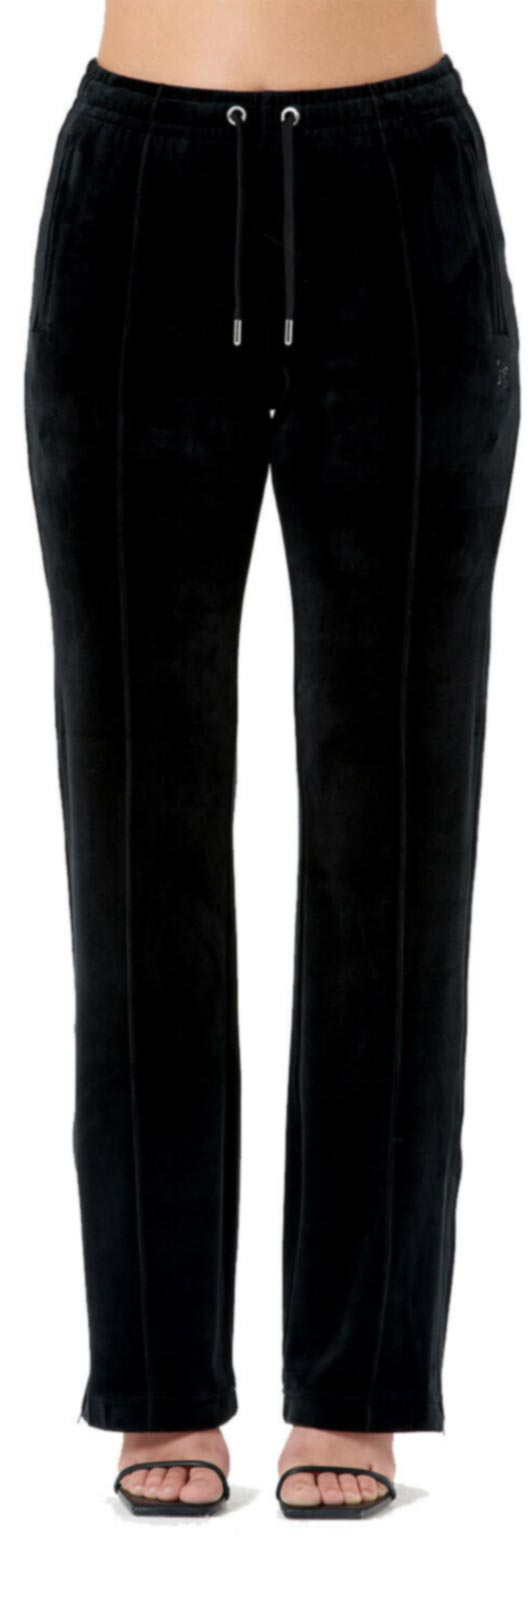 Juicy Couture Tina Velour Bottoms	Black